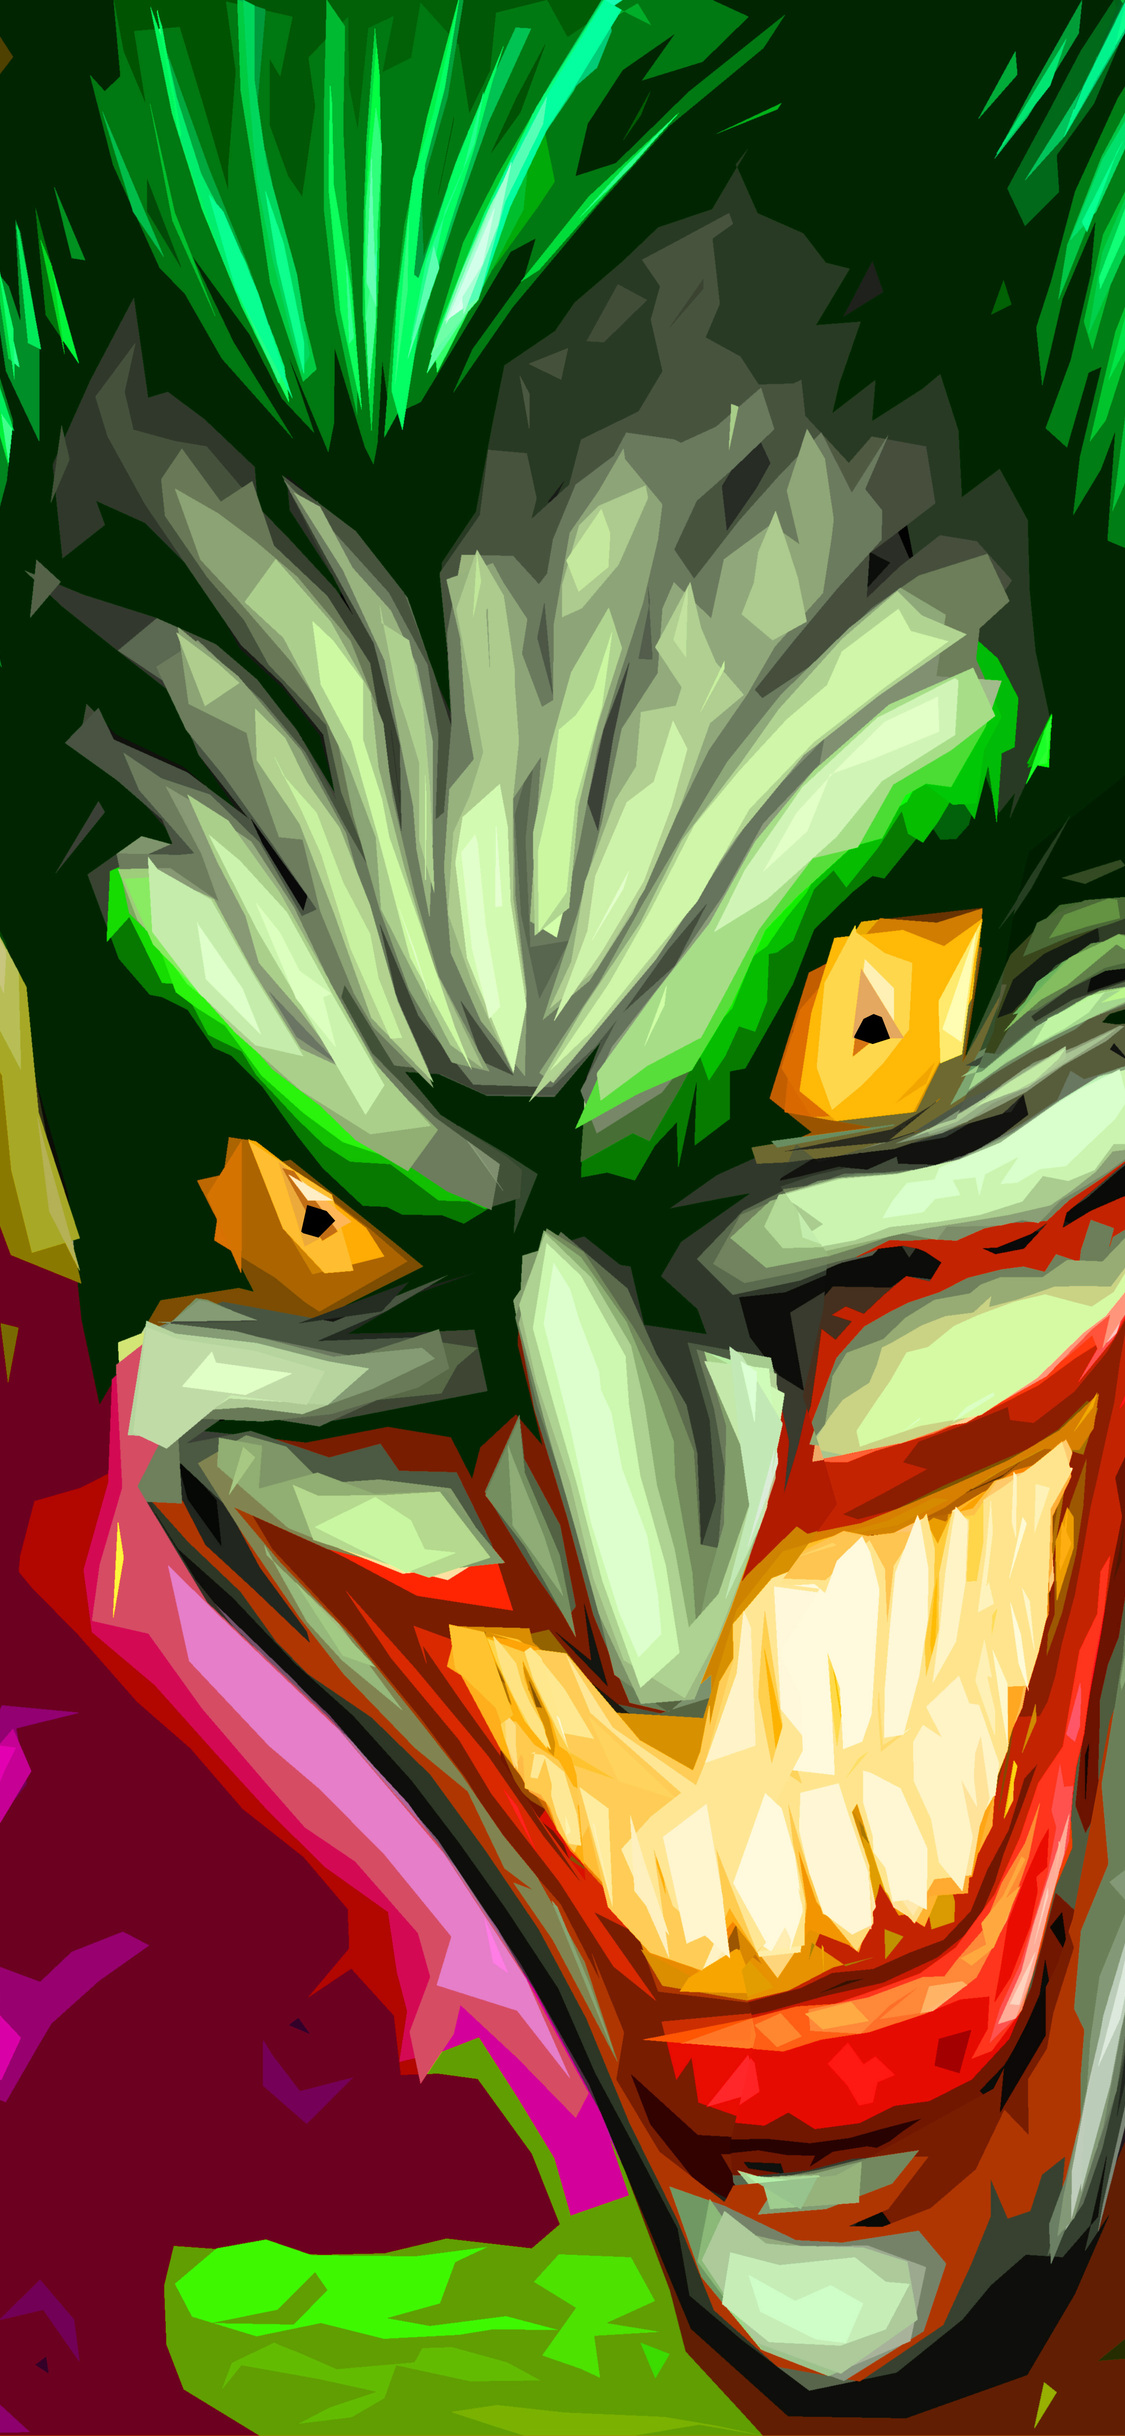 1125x2436 Joker Art 4k Iphone Xs Iphone 10 Iphone X Hd 4k